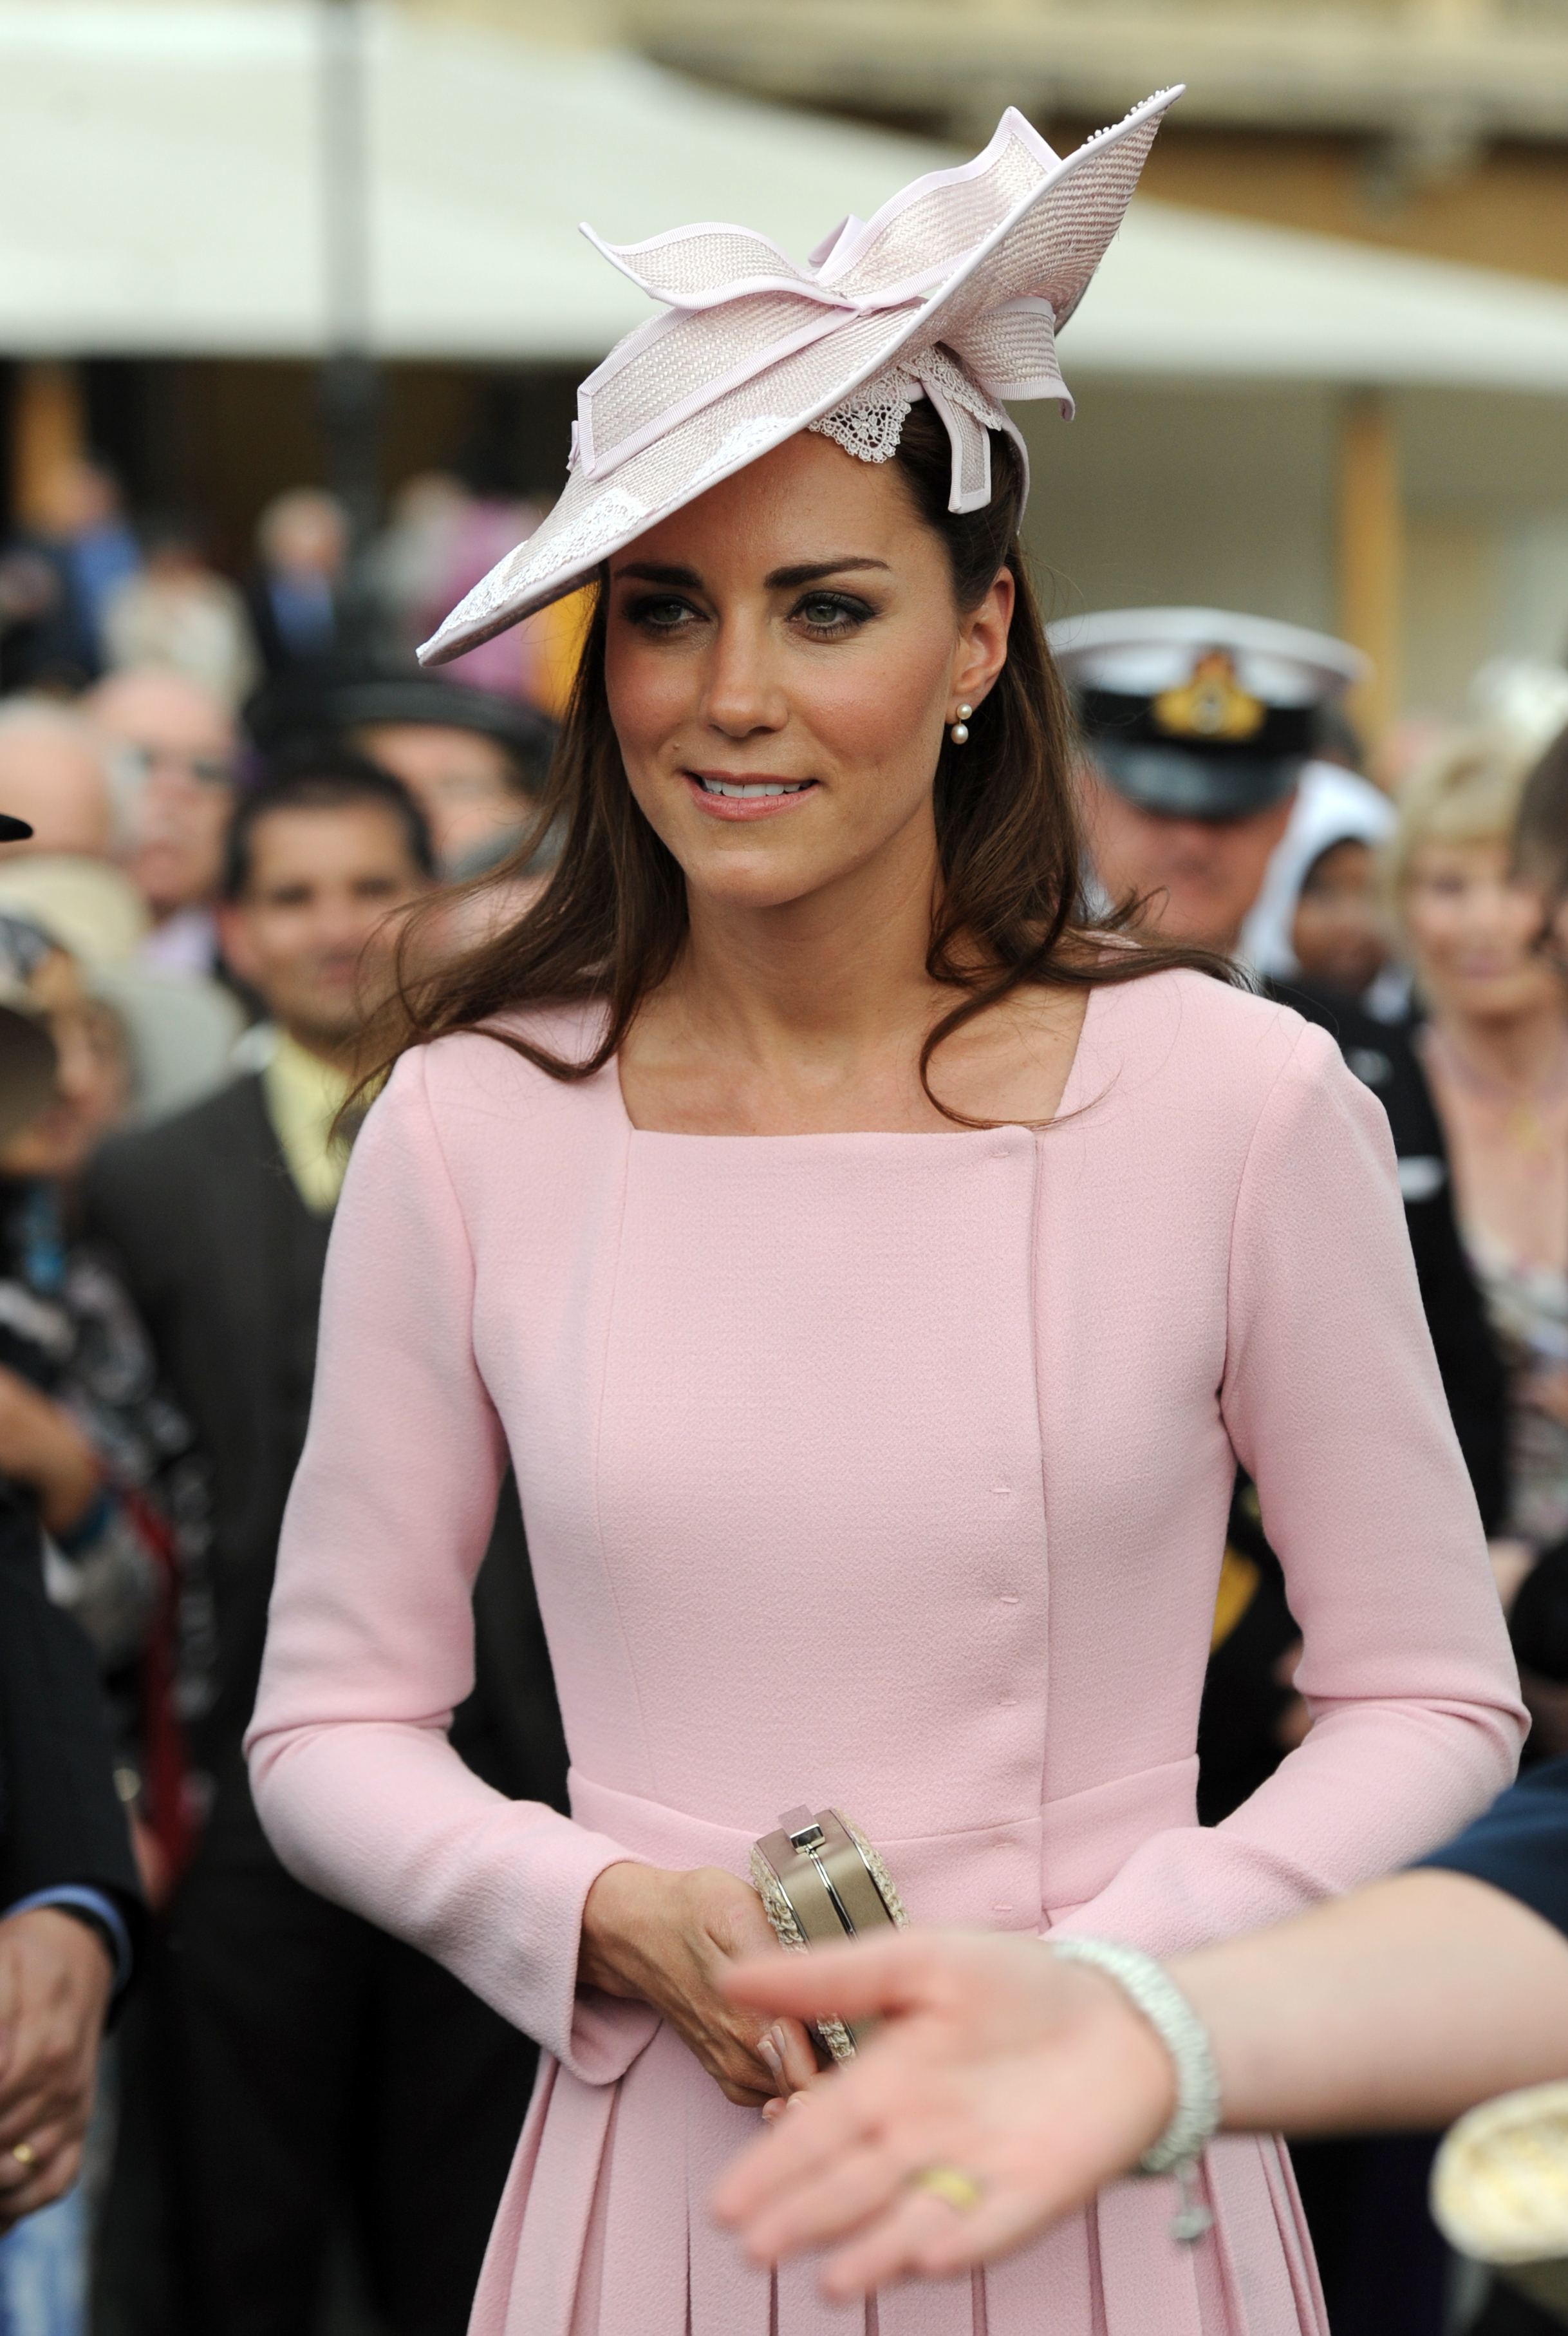 <strong>Familiar Frock</strong>                                   On May 29, 2012, In honor of Queen Elizabeth II's Diamond Jubilee, the Duchess attended a garden party at Buckingham Palace in a familiar Emilia Wickstead frock, topped off with Jane Corbett hat.